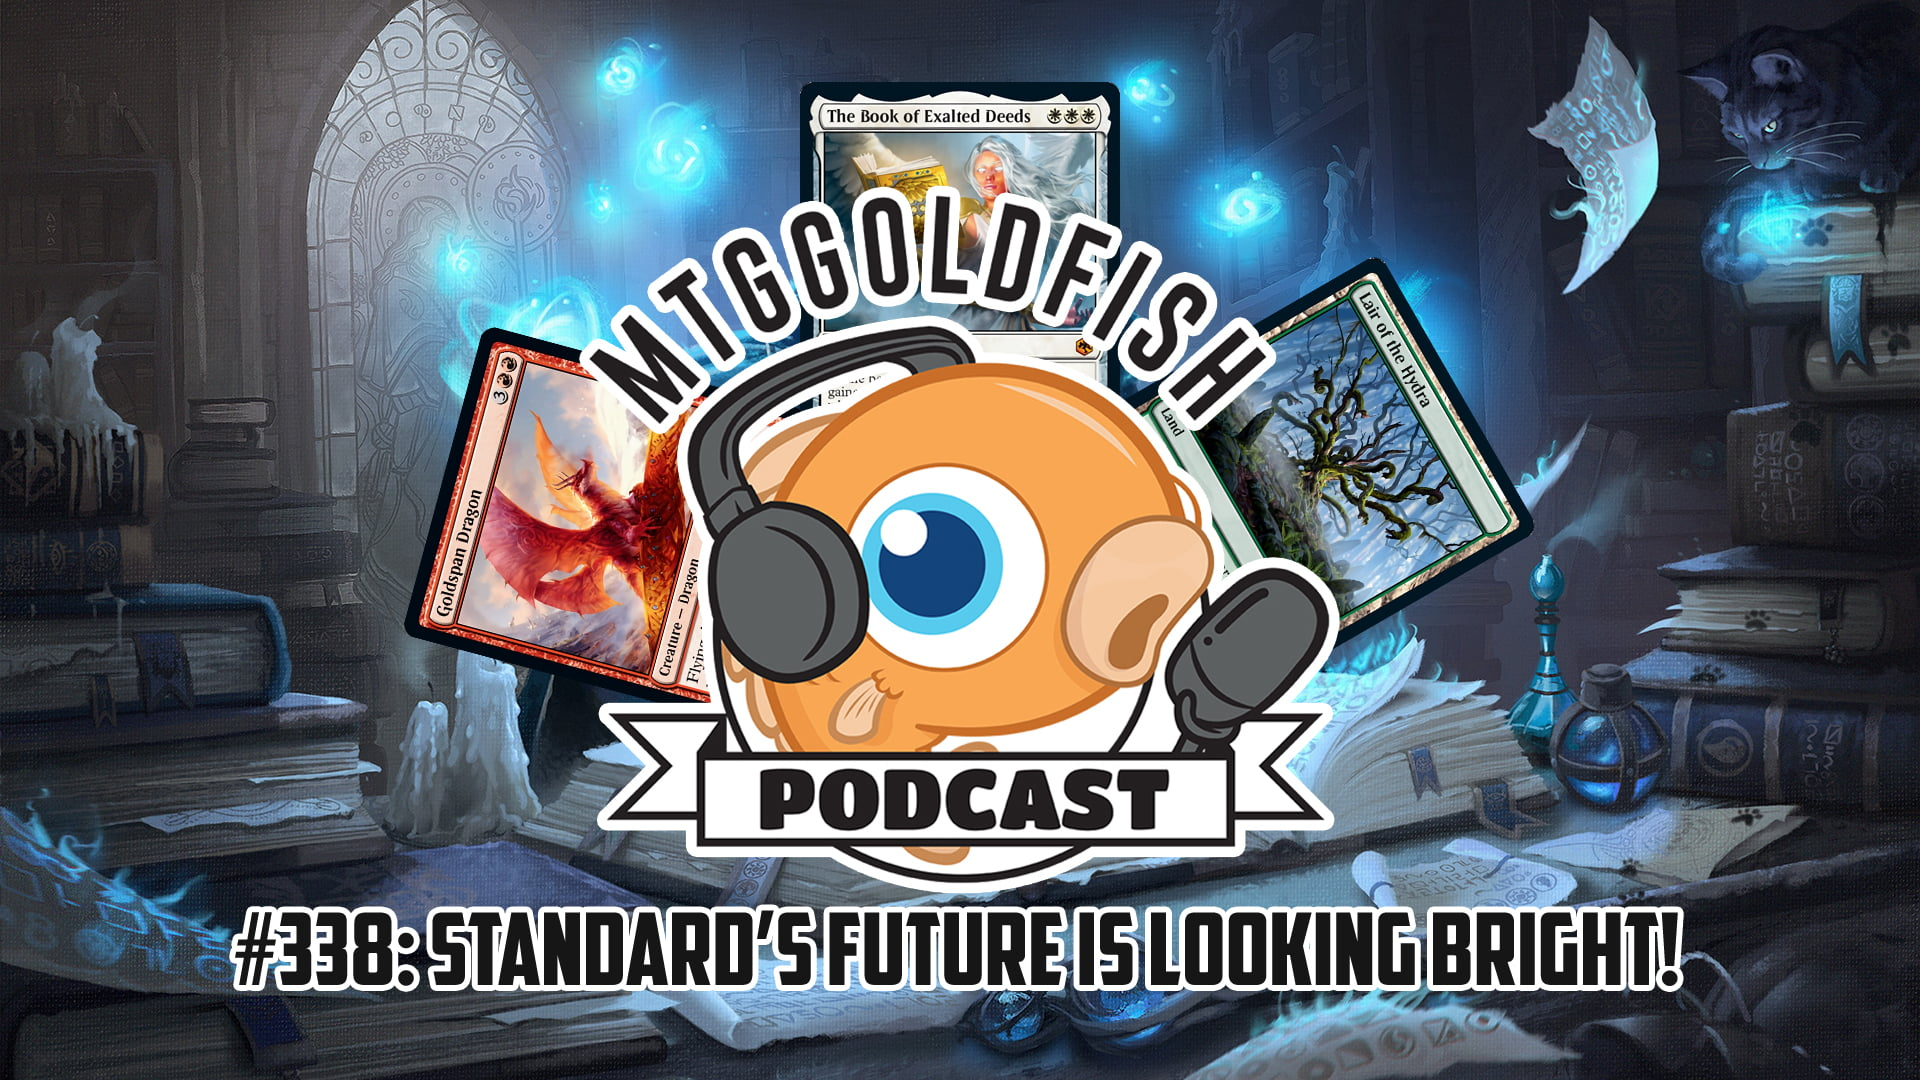 Image for Podcast 338: Standard's Future Is Looking Bright